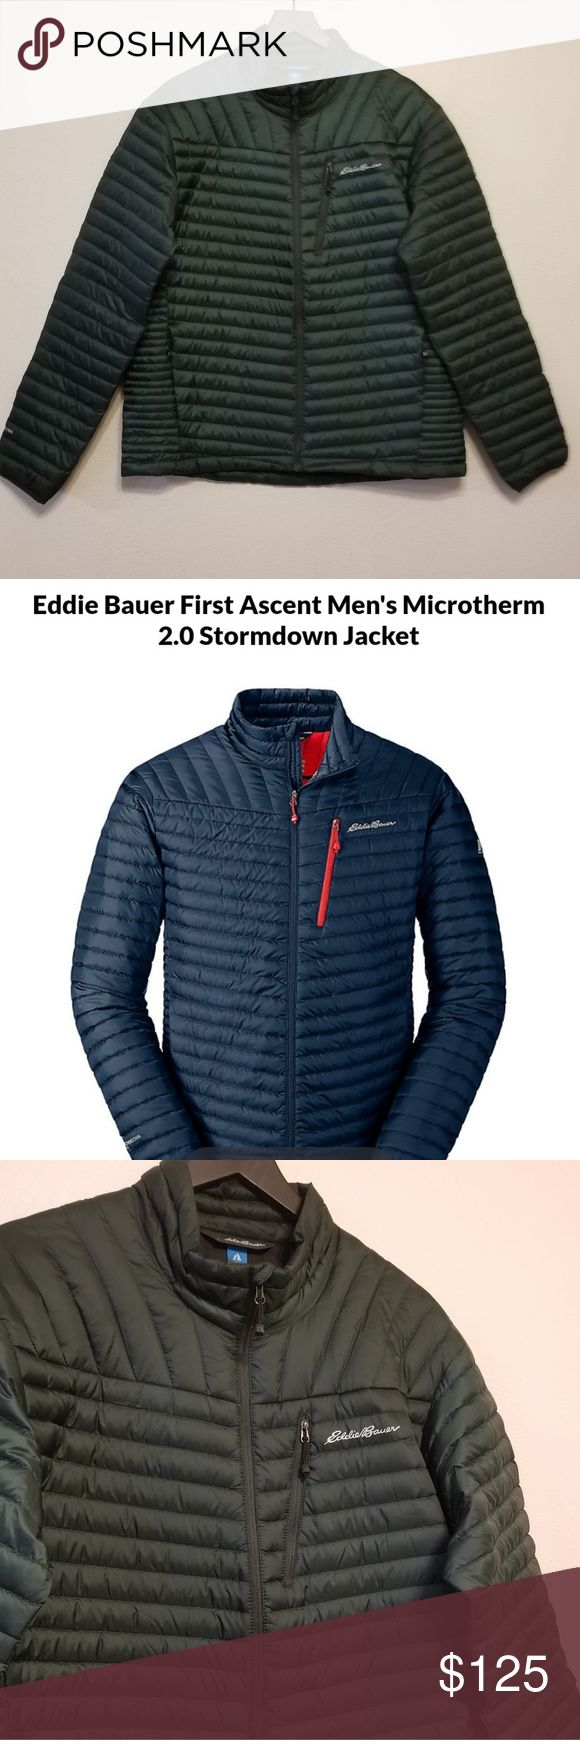 Eddie Bauer First Ascent Microtherm 2.0 Stormdown NWT